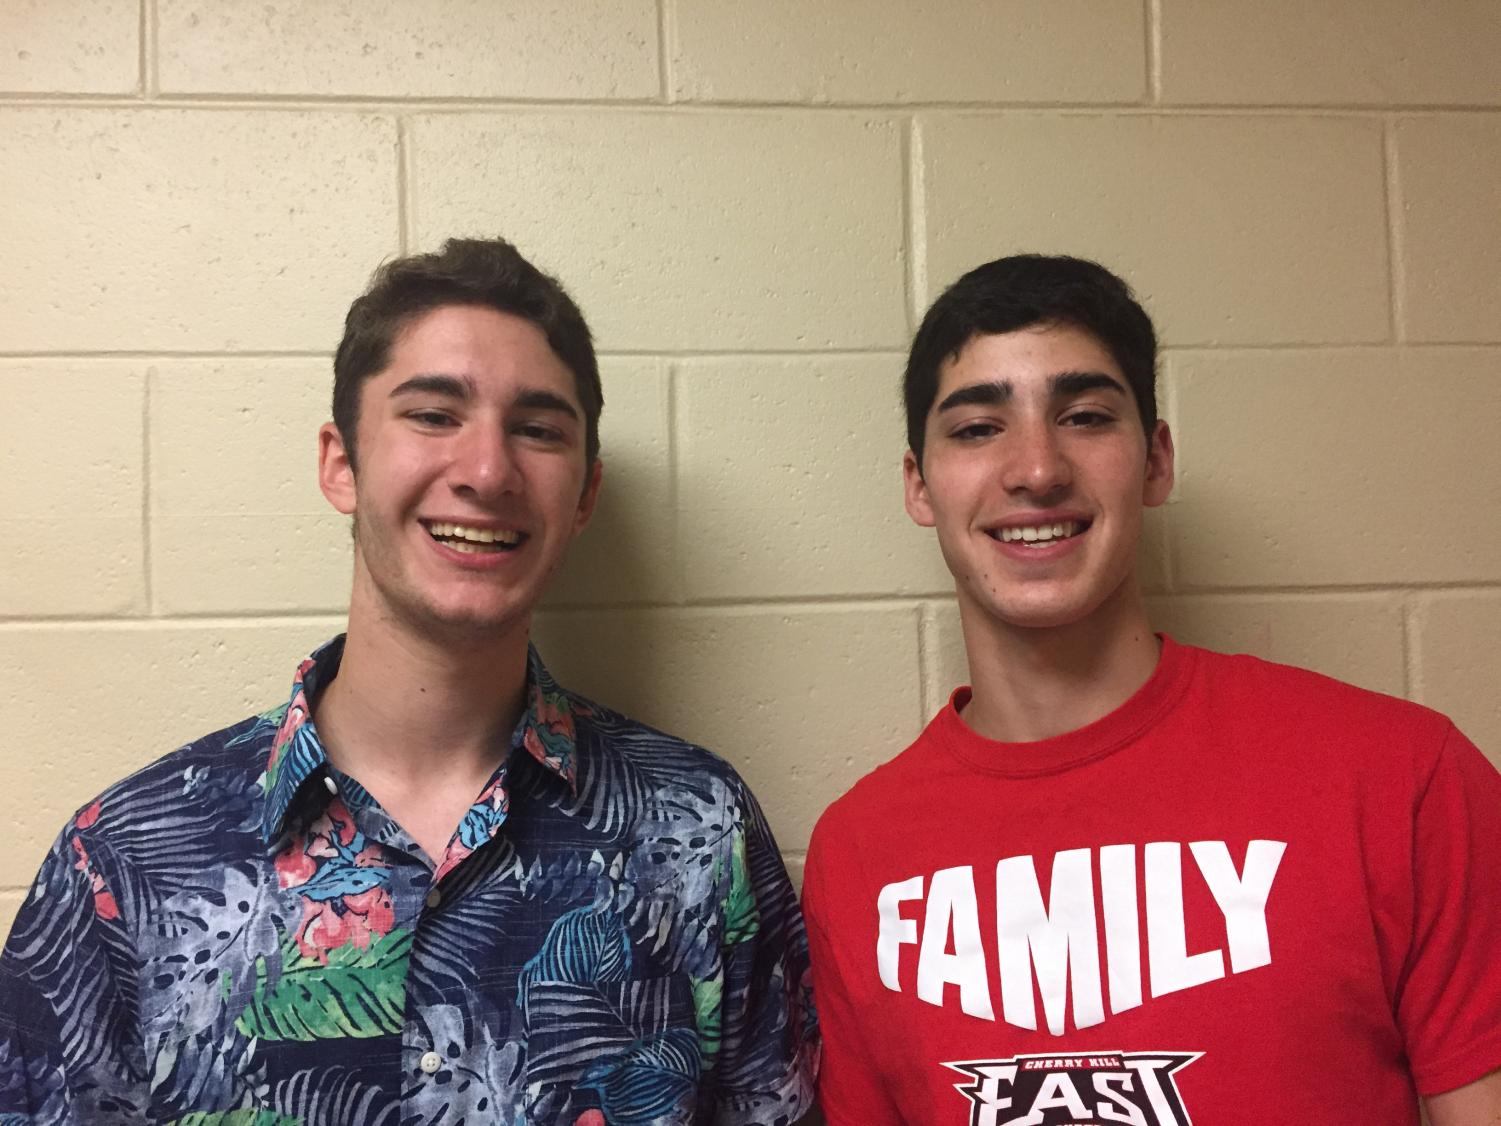 Jake Hoffman ('19) and Michael Hoffman ('19) share some facts about being twins.